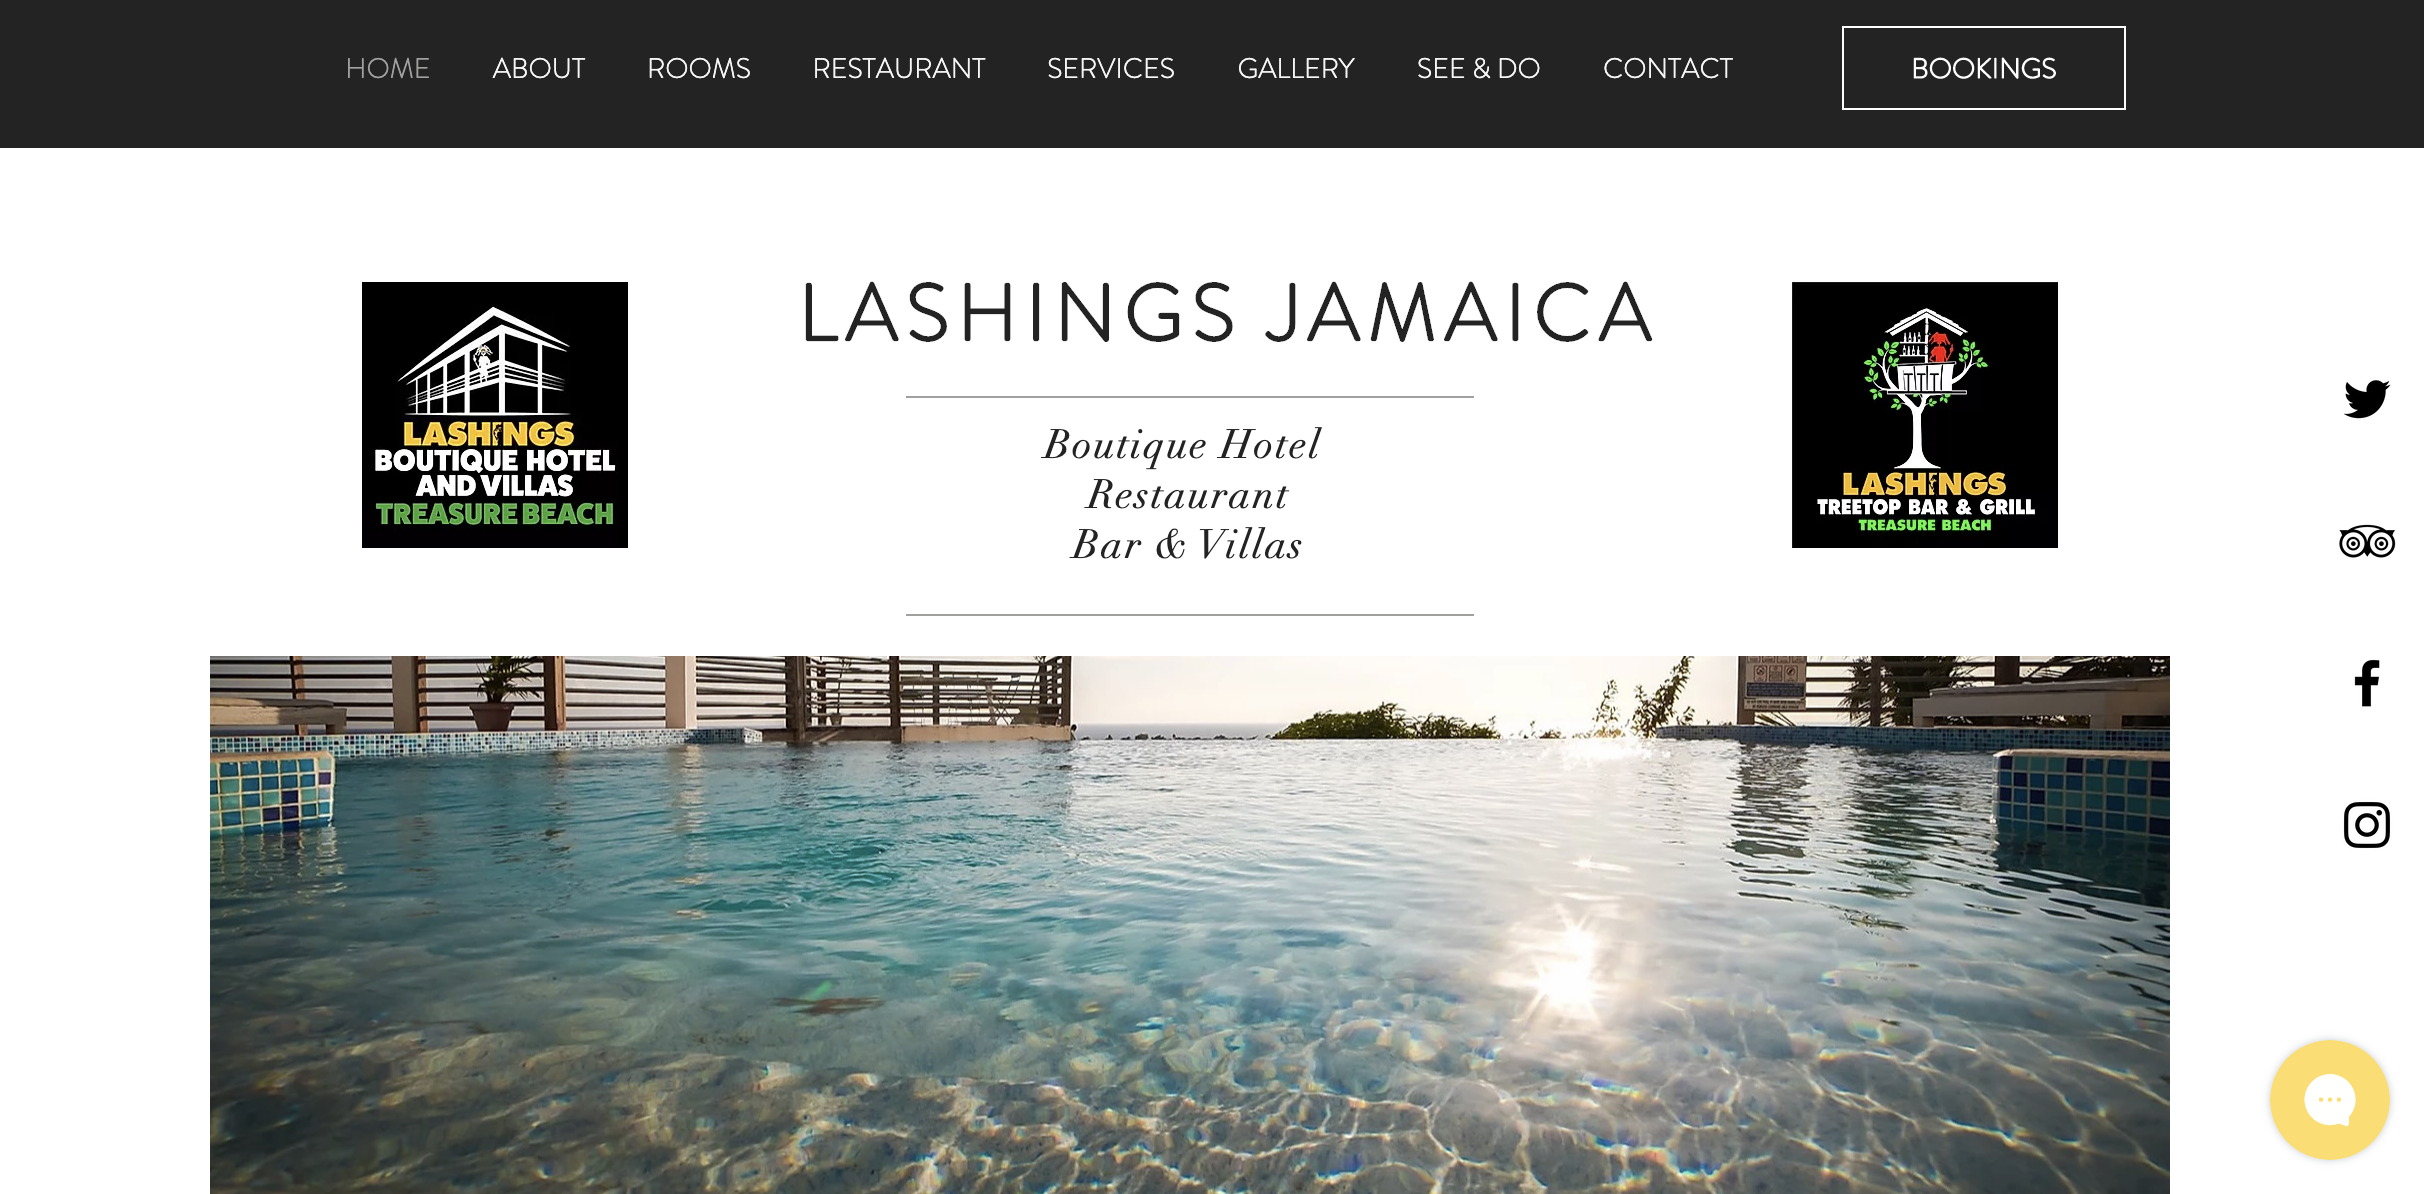 Lashings Jamaica